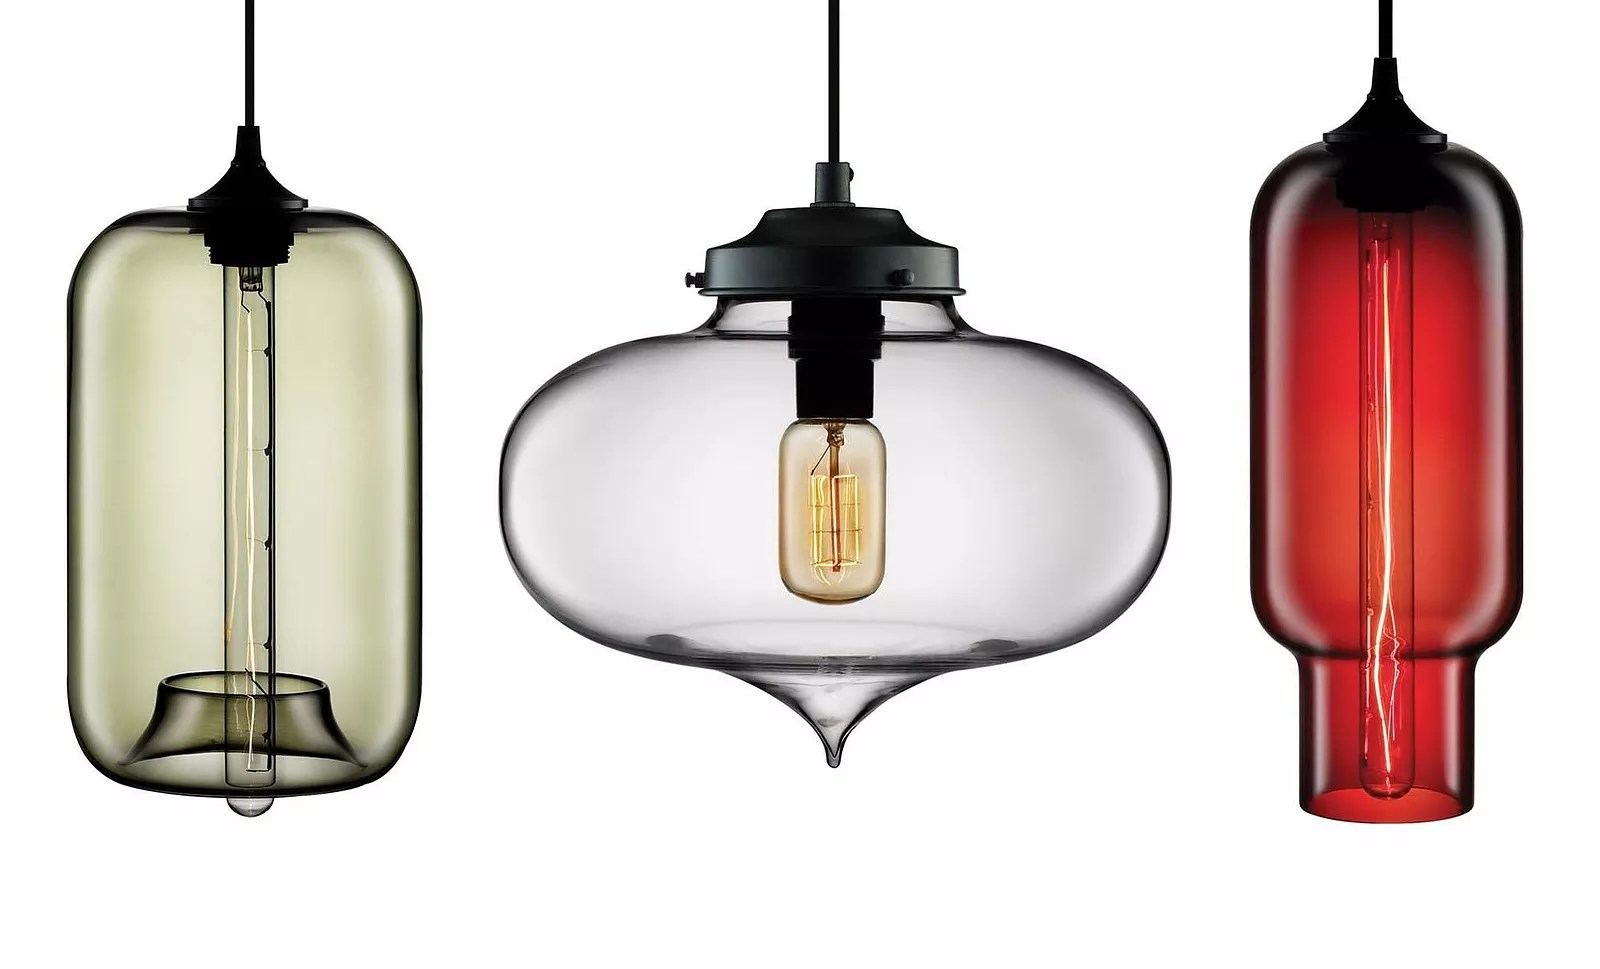 Modern Hanging Lights Stunning Pendant Lights By Niche Modern Design Is This